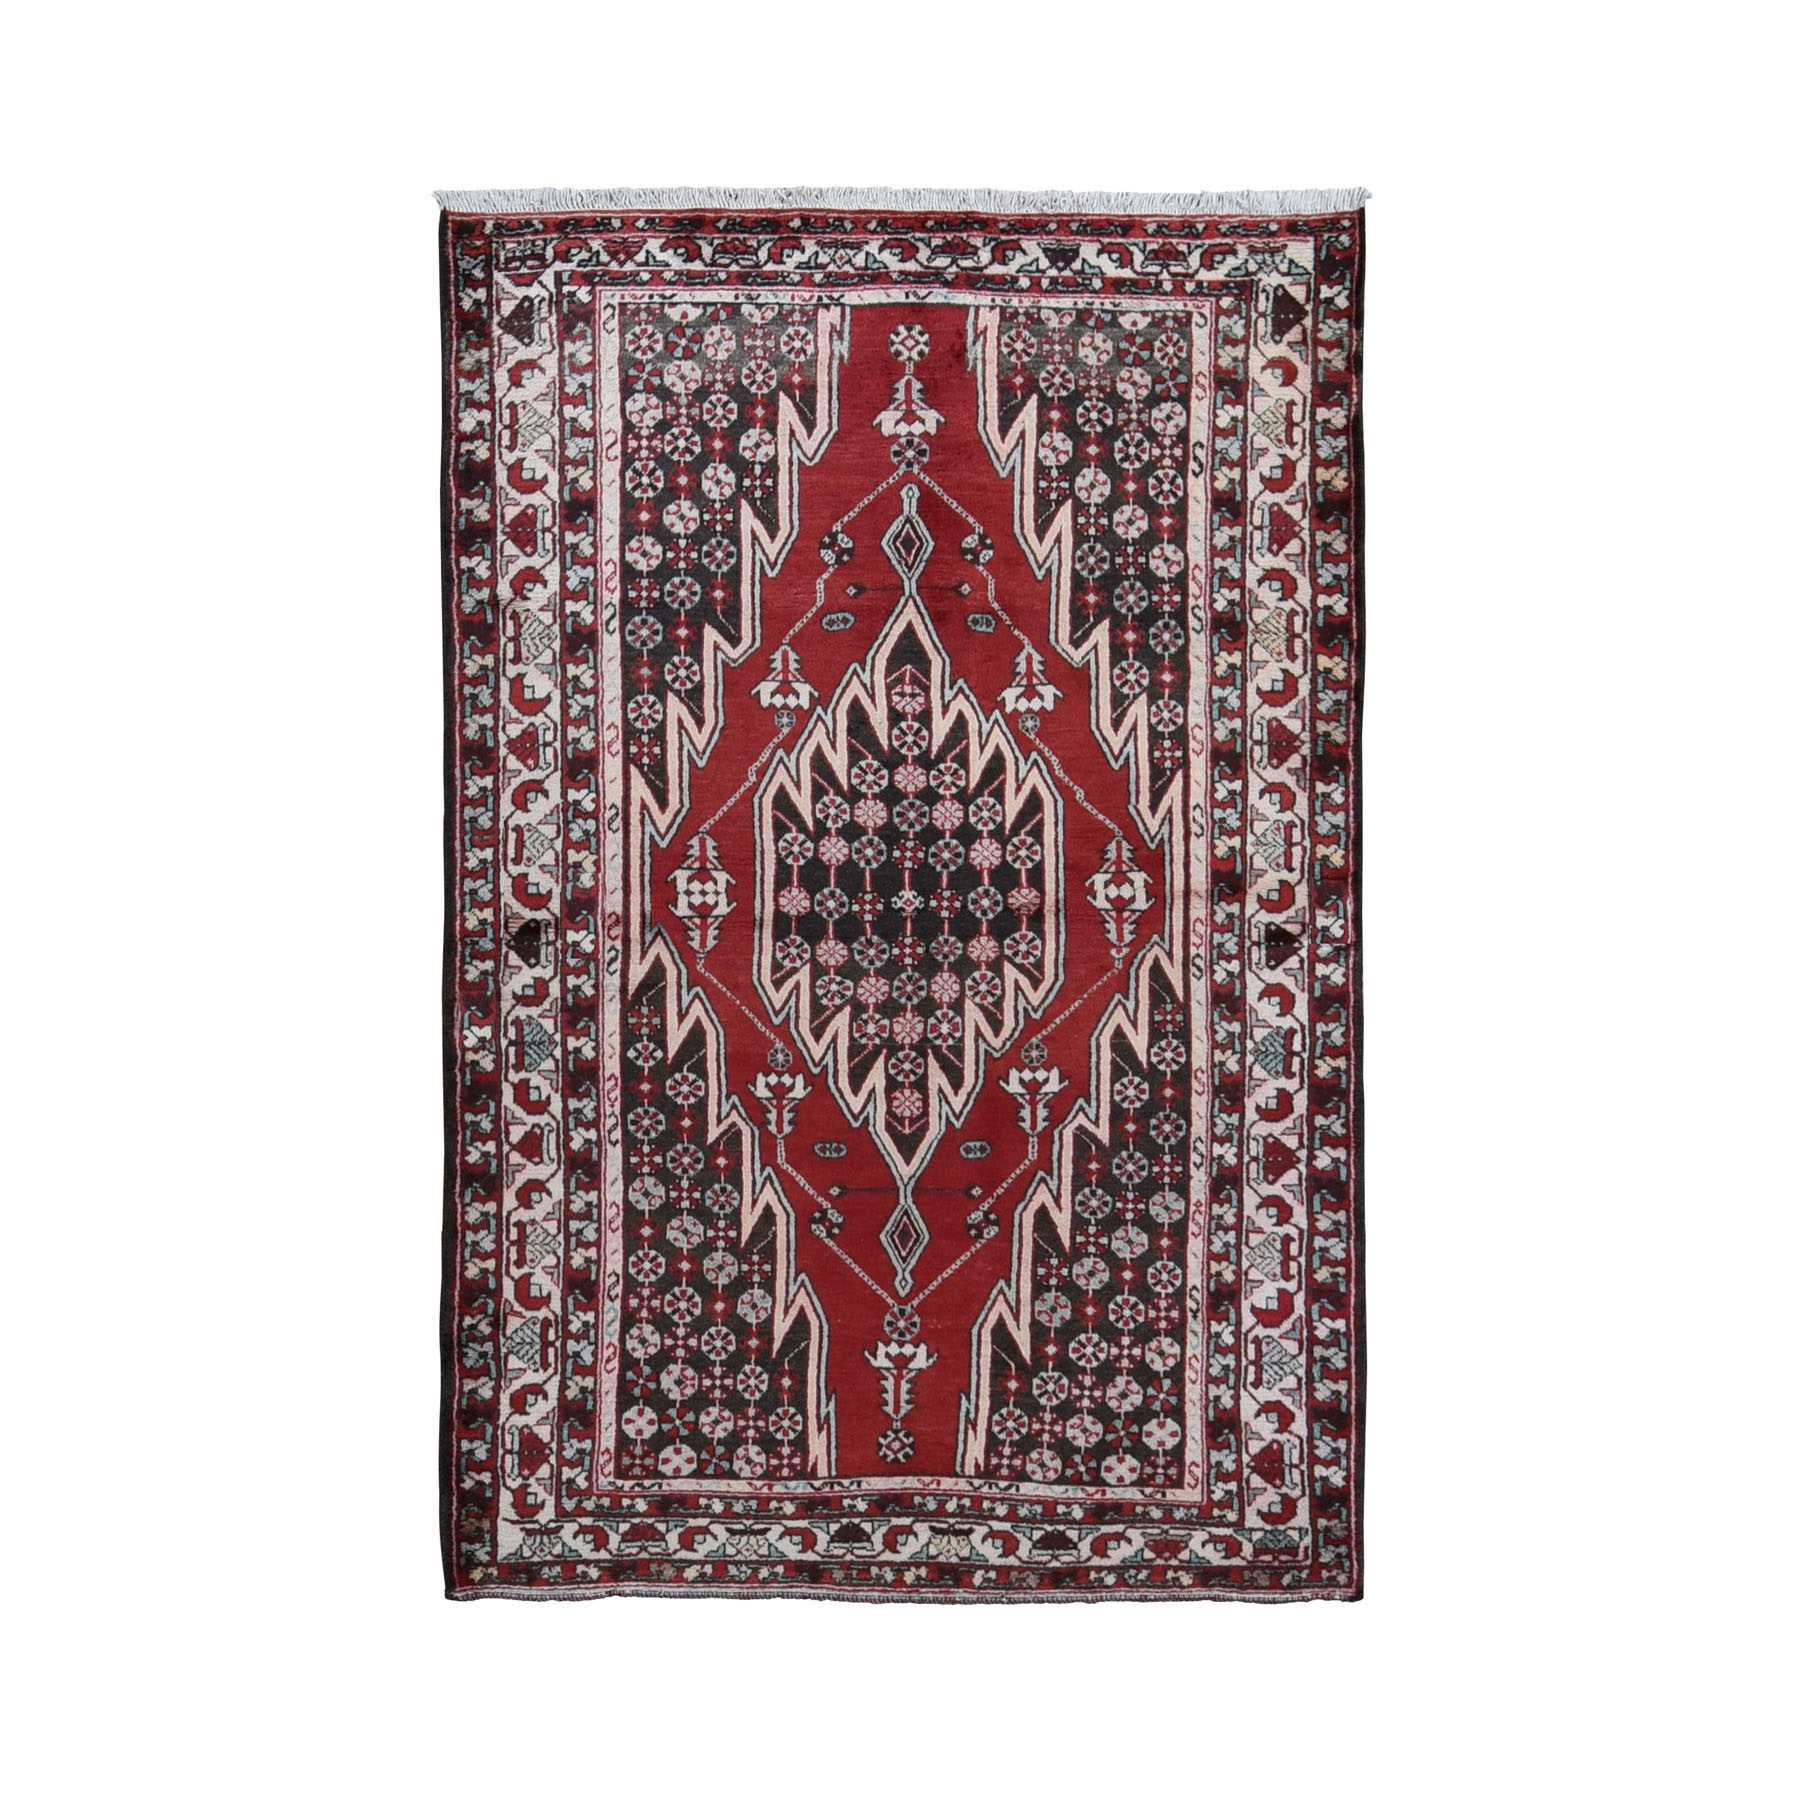 "4'5""x6'8"" Red Vintage Persian Mazlagan Pure Wool Hand Knotted Bohemian Rug"